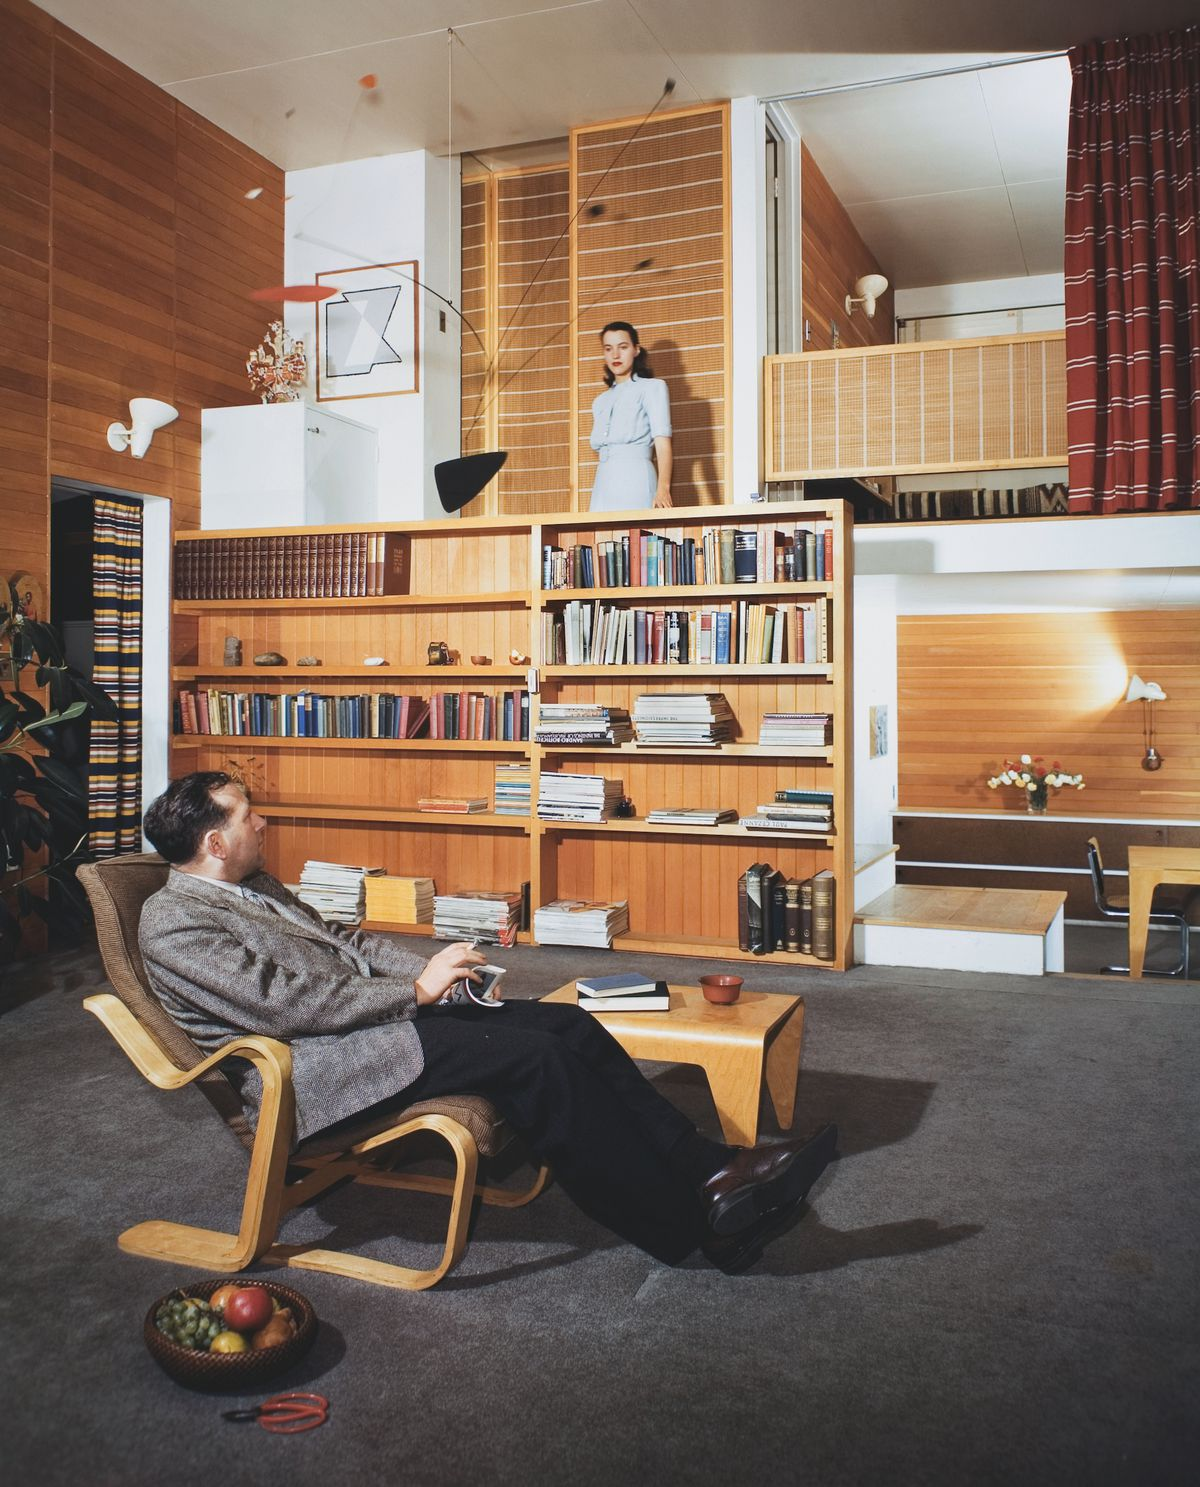 A man sits in a living room chair looking up at a woman standing on a mezzanine. The walls are lined with built-in wood bookshelves and the carpet is gray.